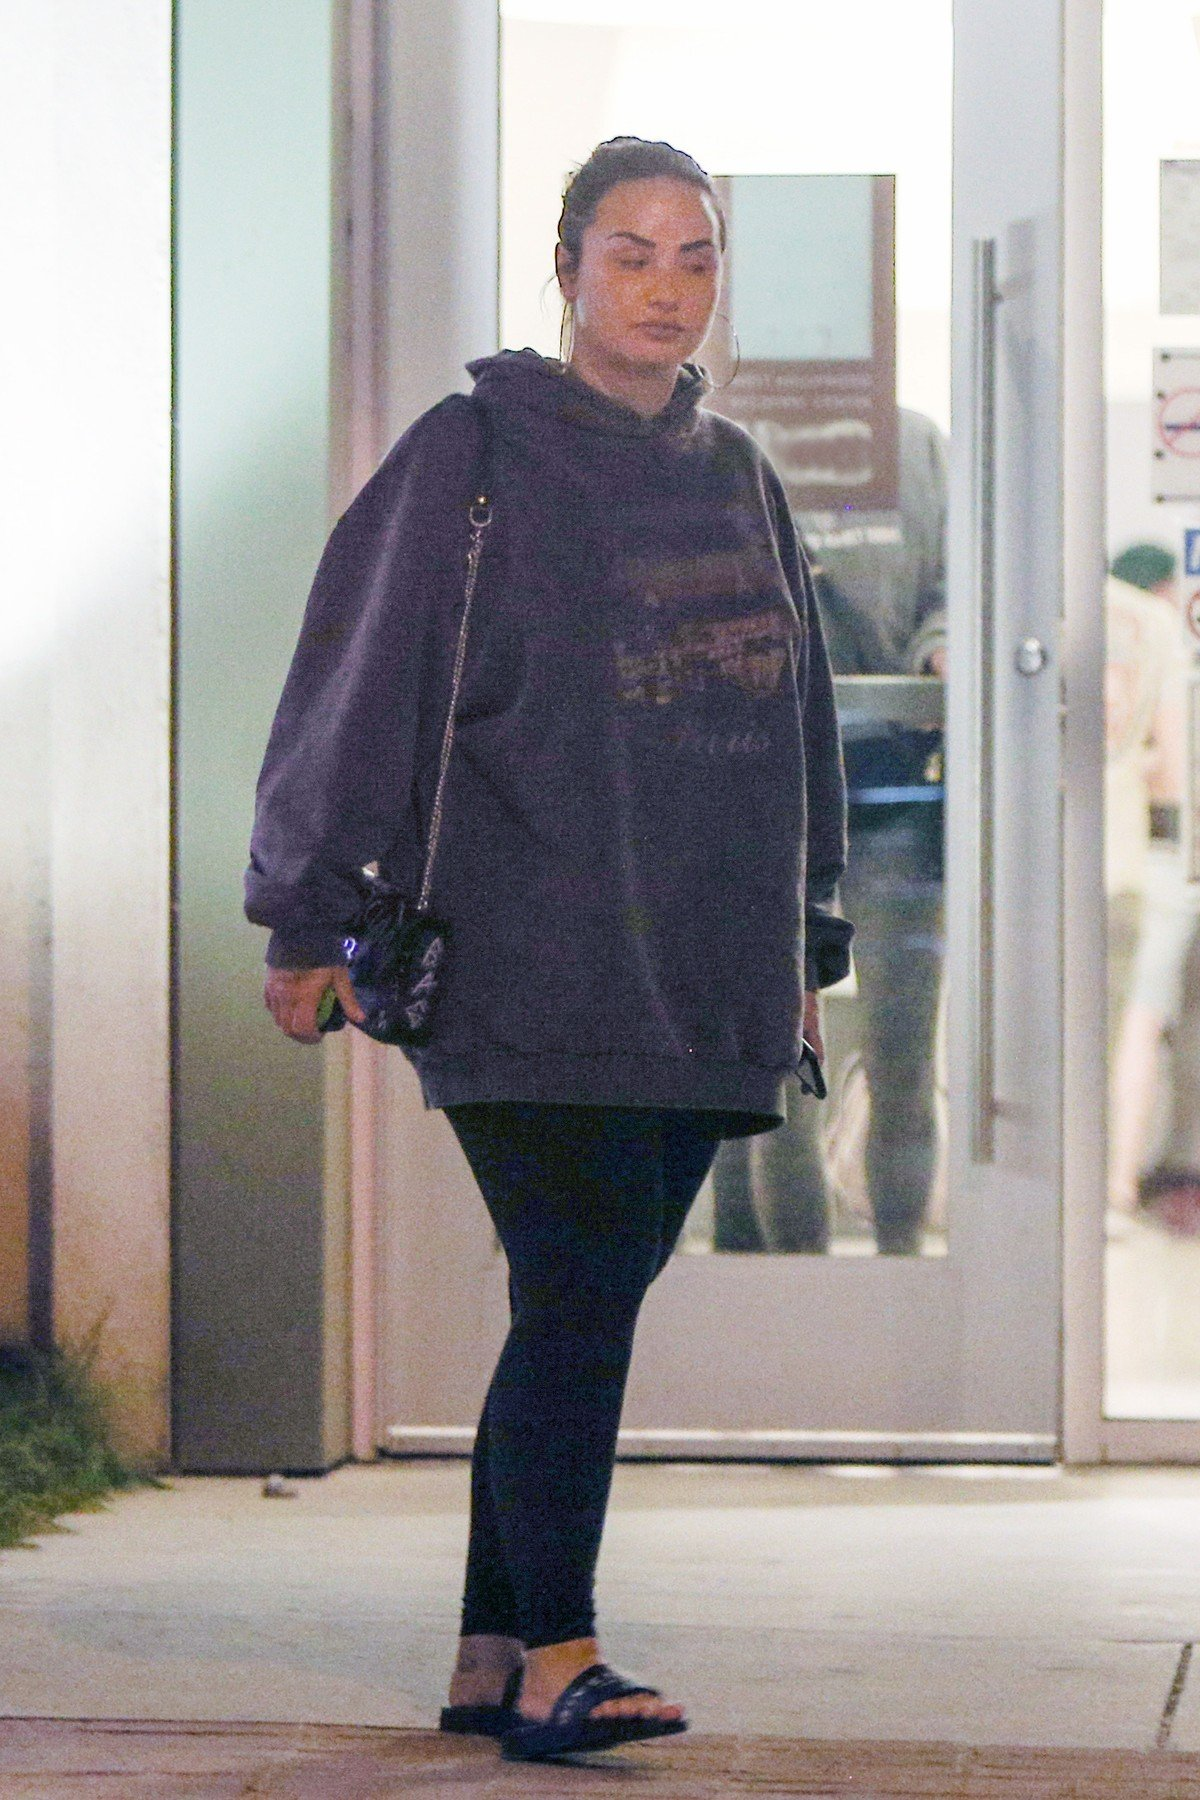 FIA PREMIUM Exclu! ***NO USE W/O PRIOR AGREEMENT - CALL FOR PRICING*** Demi Lovato goes out in Public to shop at a Beauty Store in Beverly Hills 03/14/19! The singer was spotted with a friends checking out spa treatments, waxing creams, body scrubs and other facial creams at upscale store on Thursday evening, 03/14.19 ***NO USE W/O PRIOR AGREEMENT - CALL FOR PRICING***  PREMIUM, Image: 419777628, License: Rights-managed, Restrictions: , Model Release: no, Credit line: Profimedia, FIA